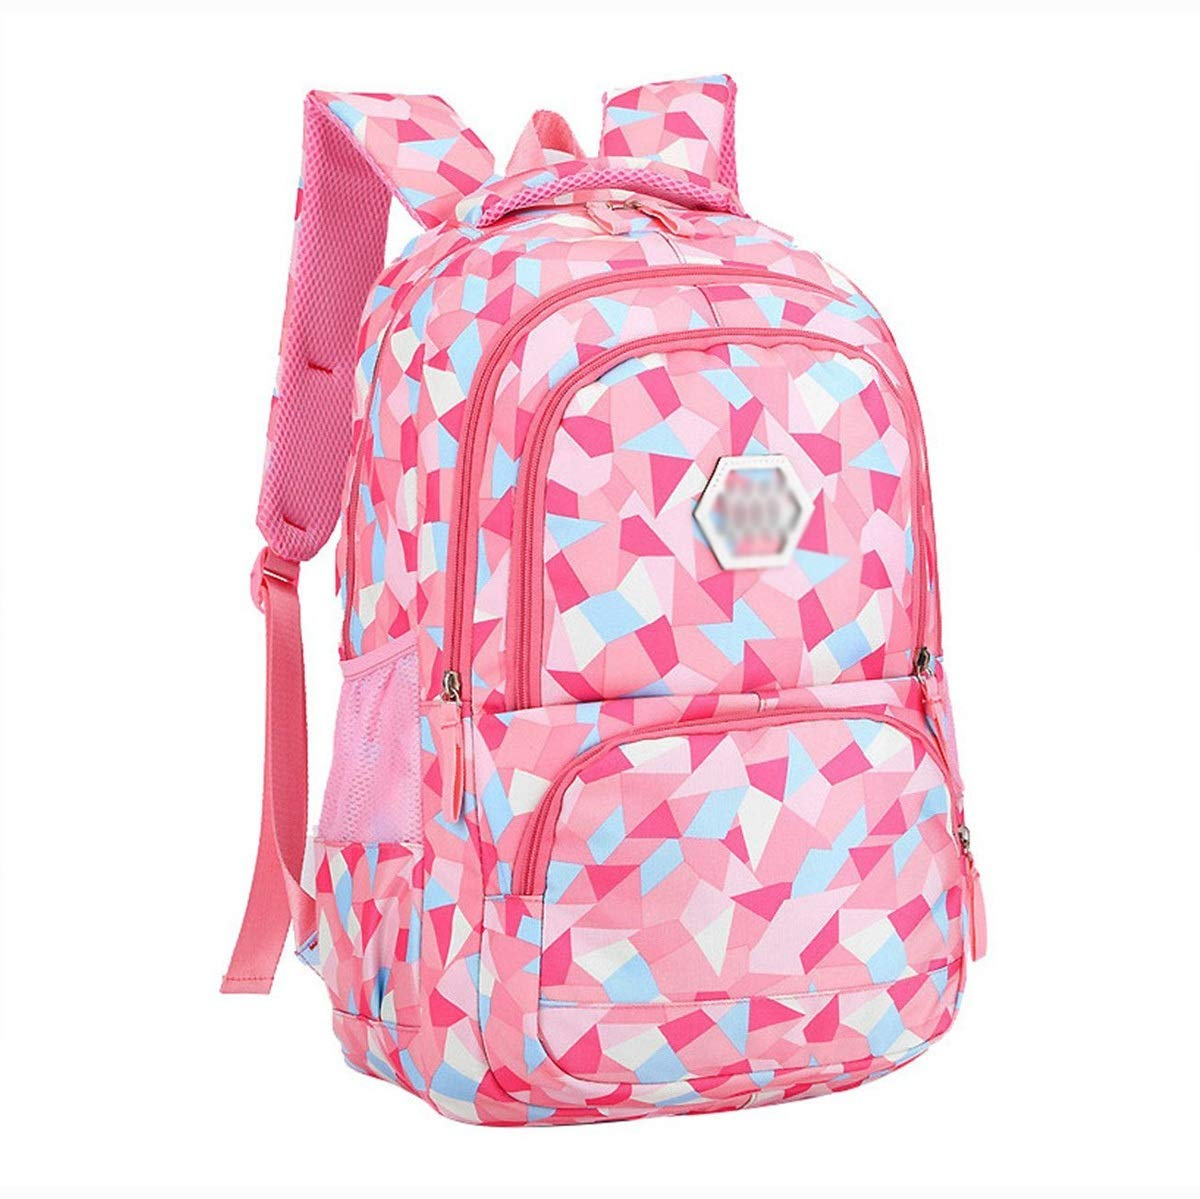 Amazon.com: XHHWZB Waterproof School Backpack for Girls Middle School Cute Bookbag Daypack for Women Rhombus (Color : Pink, Size : Big): Office Products